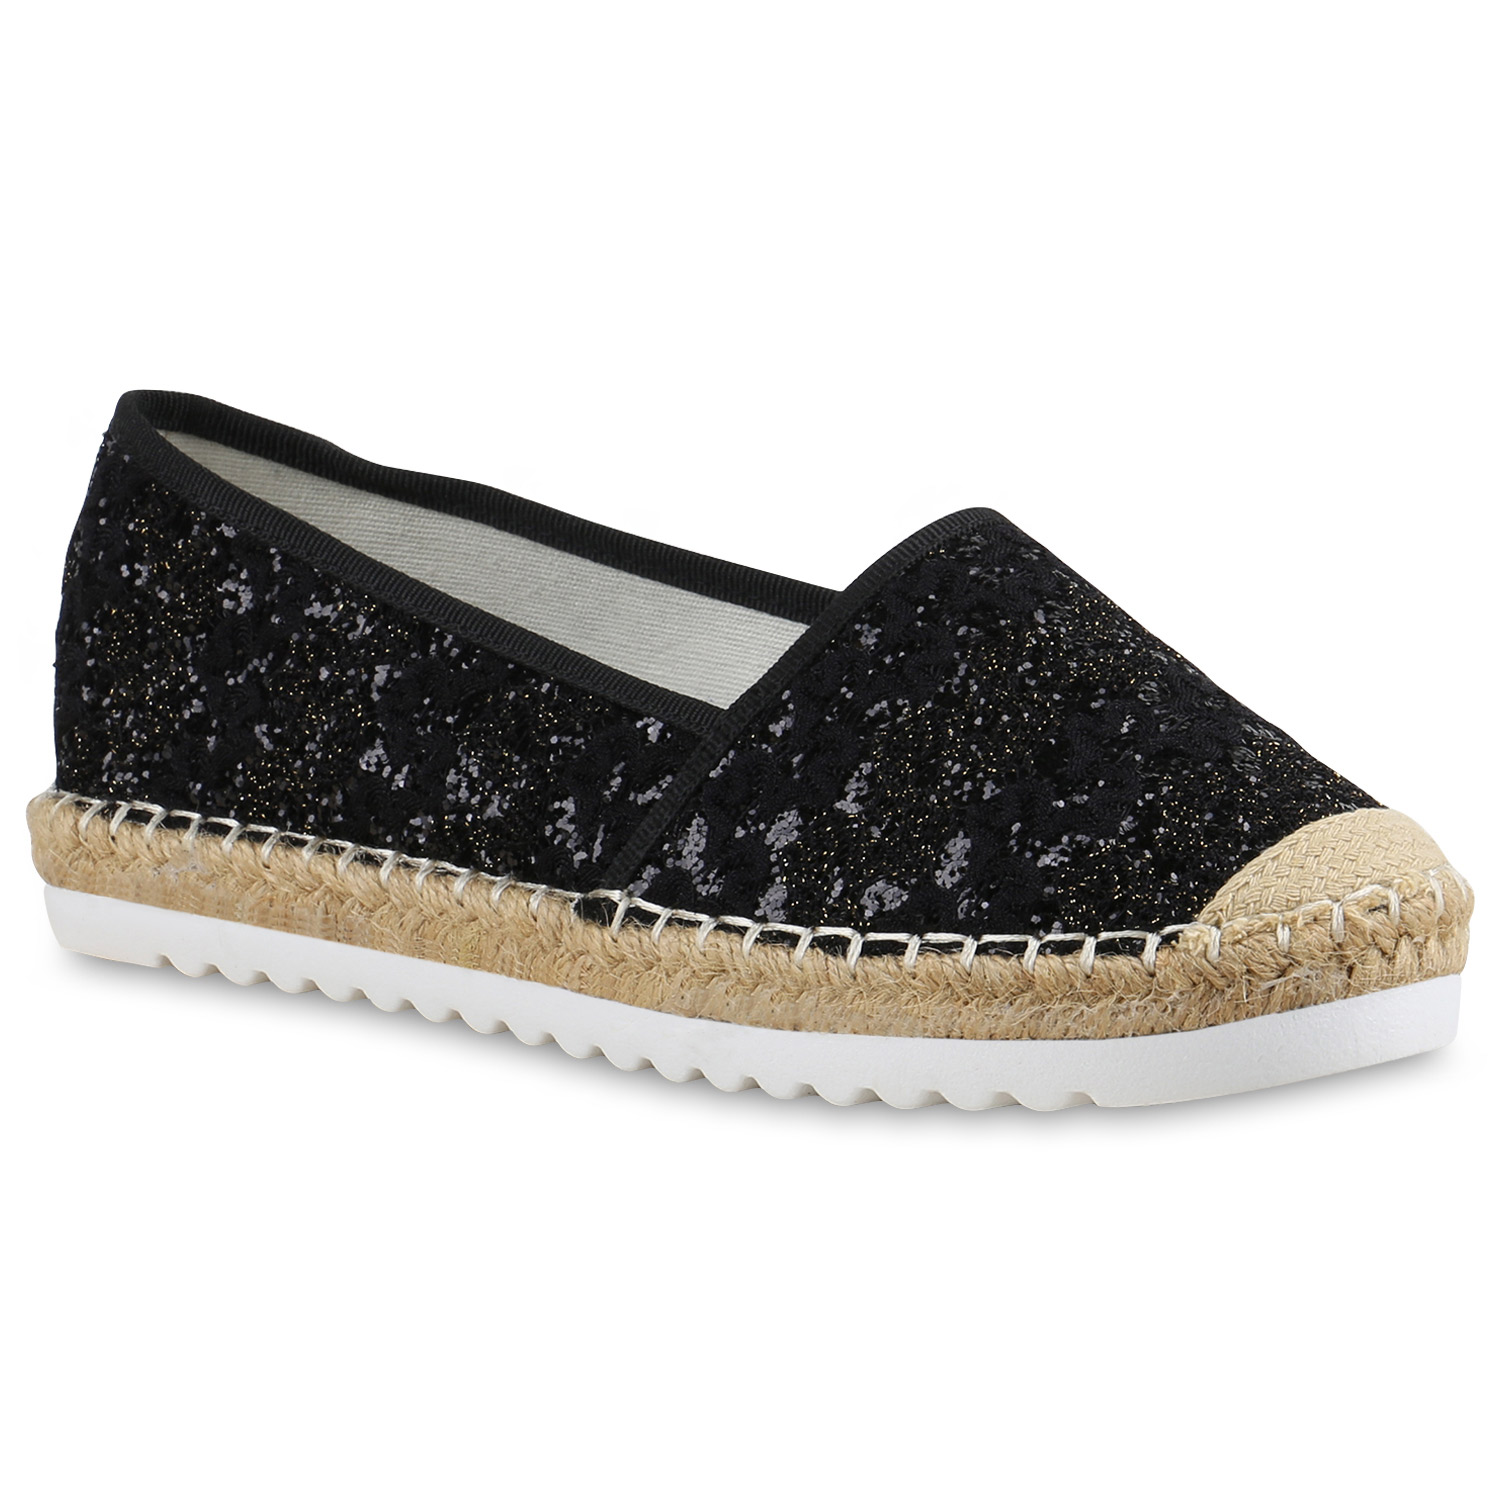 damen slipper espadrilles profilsohle glitzer freizeit schuhe 815821 ebay. Black Bedroom Furniture Sets. Home Design Ideas